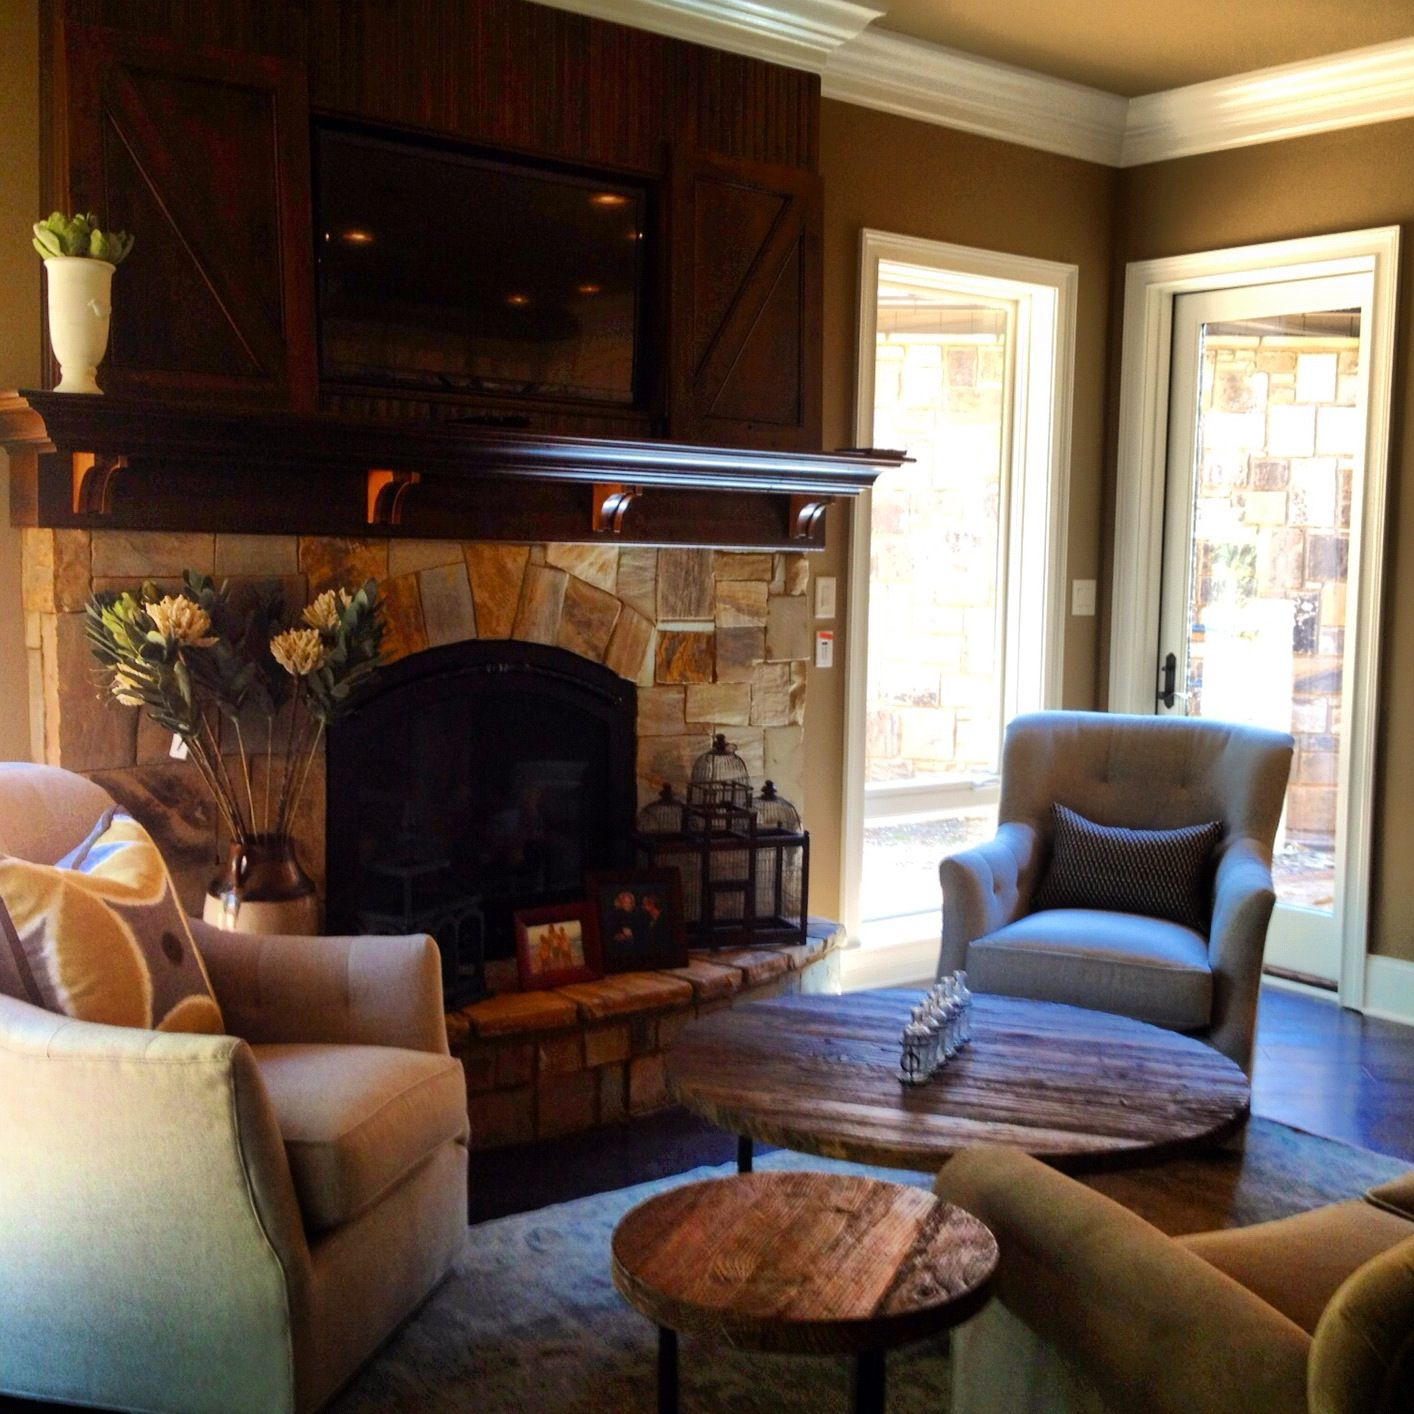 Cozy Hearth Room I Recently Completed Fireplace Seating Hearth Room Room Design